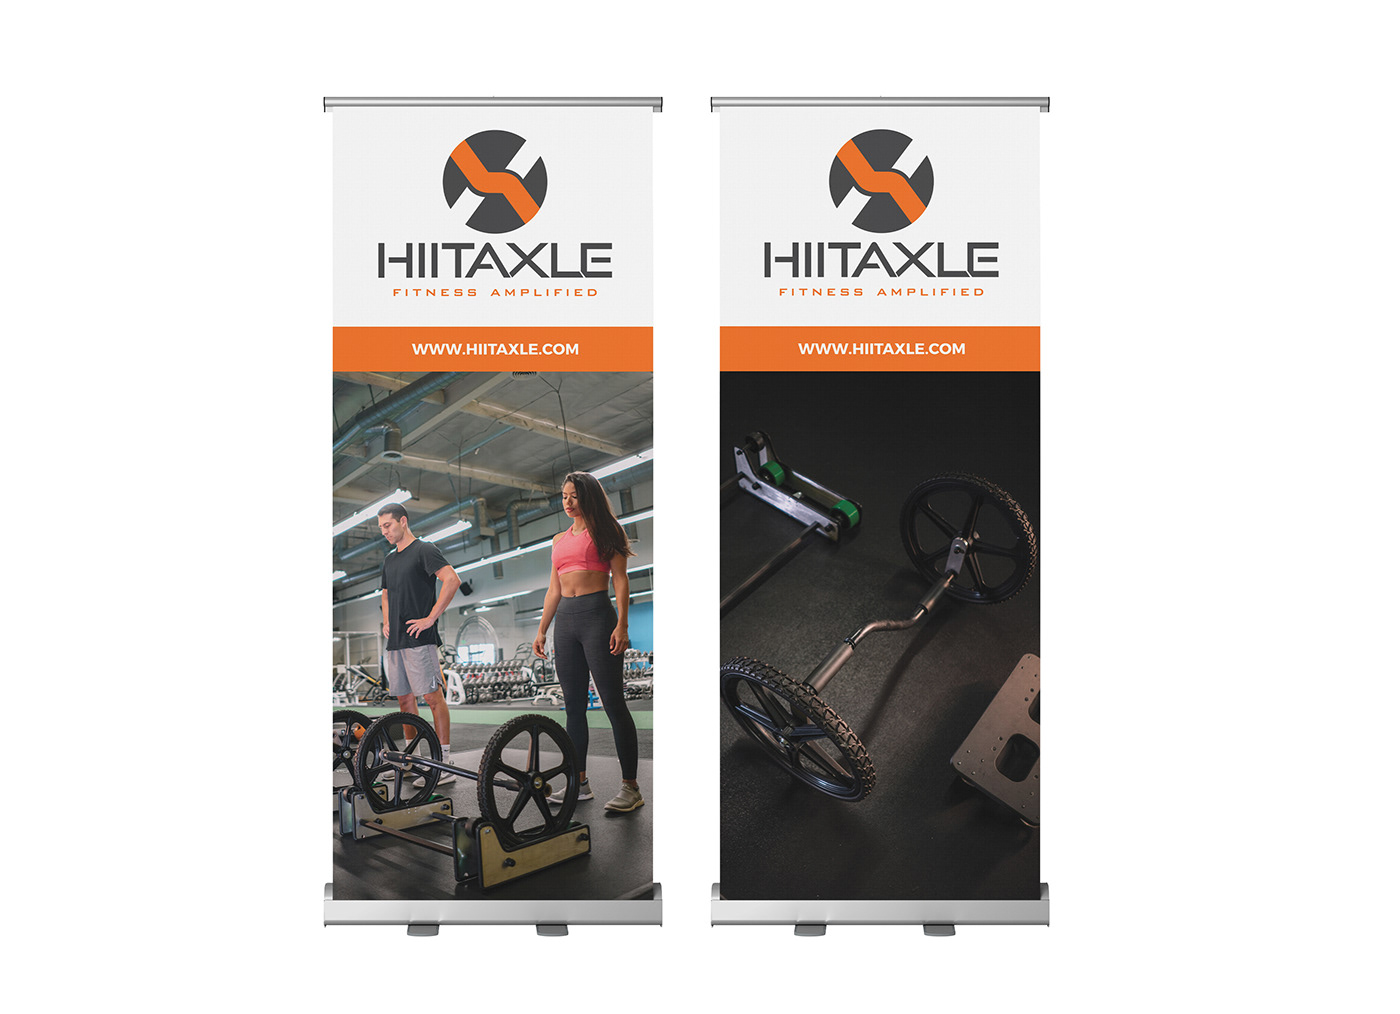 Tradeshow retractable banners for HIITAXLE